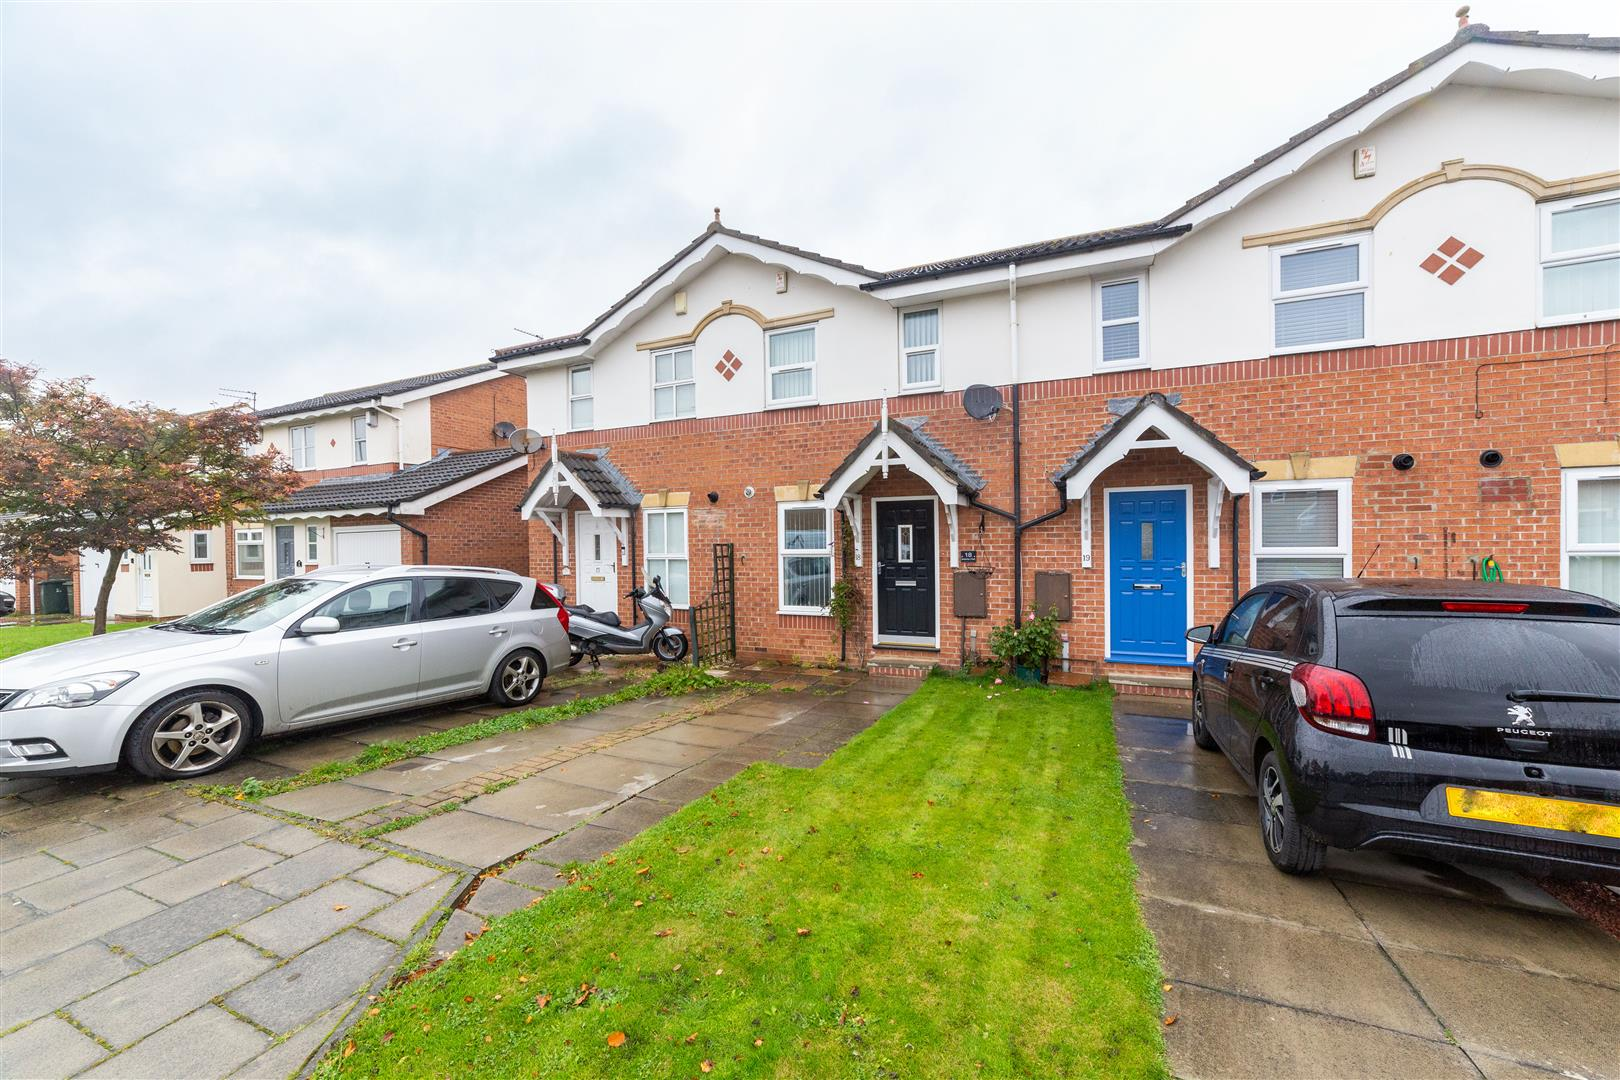 2 bed terraced house for sale in Newcastle Upon Tyne, NE13 7BD  - Property Image 1